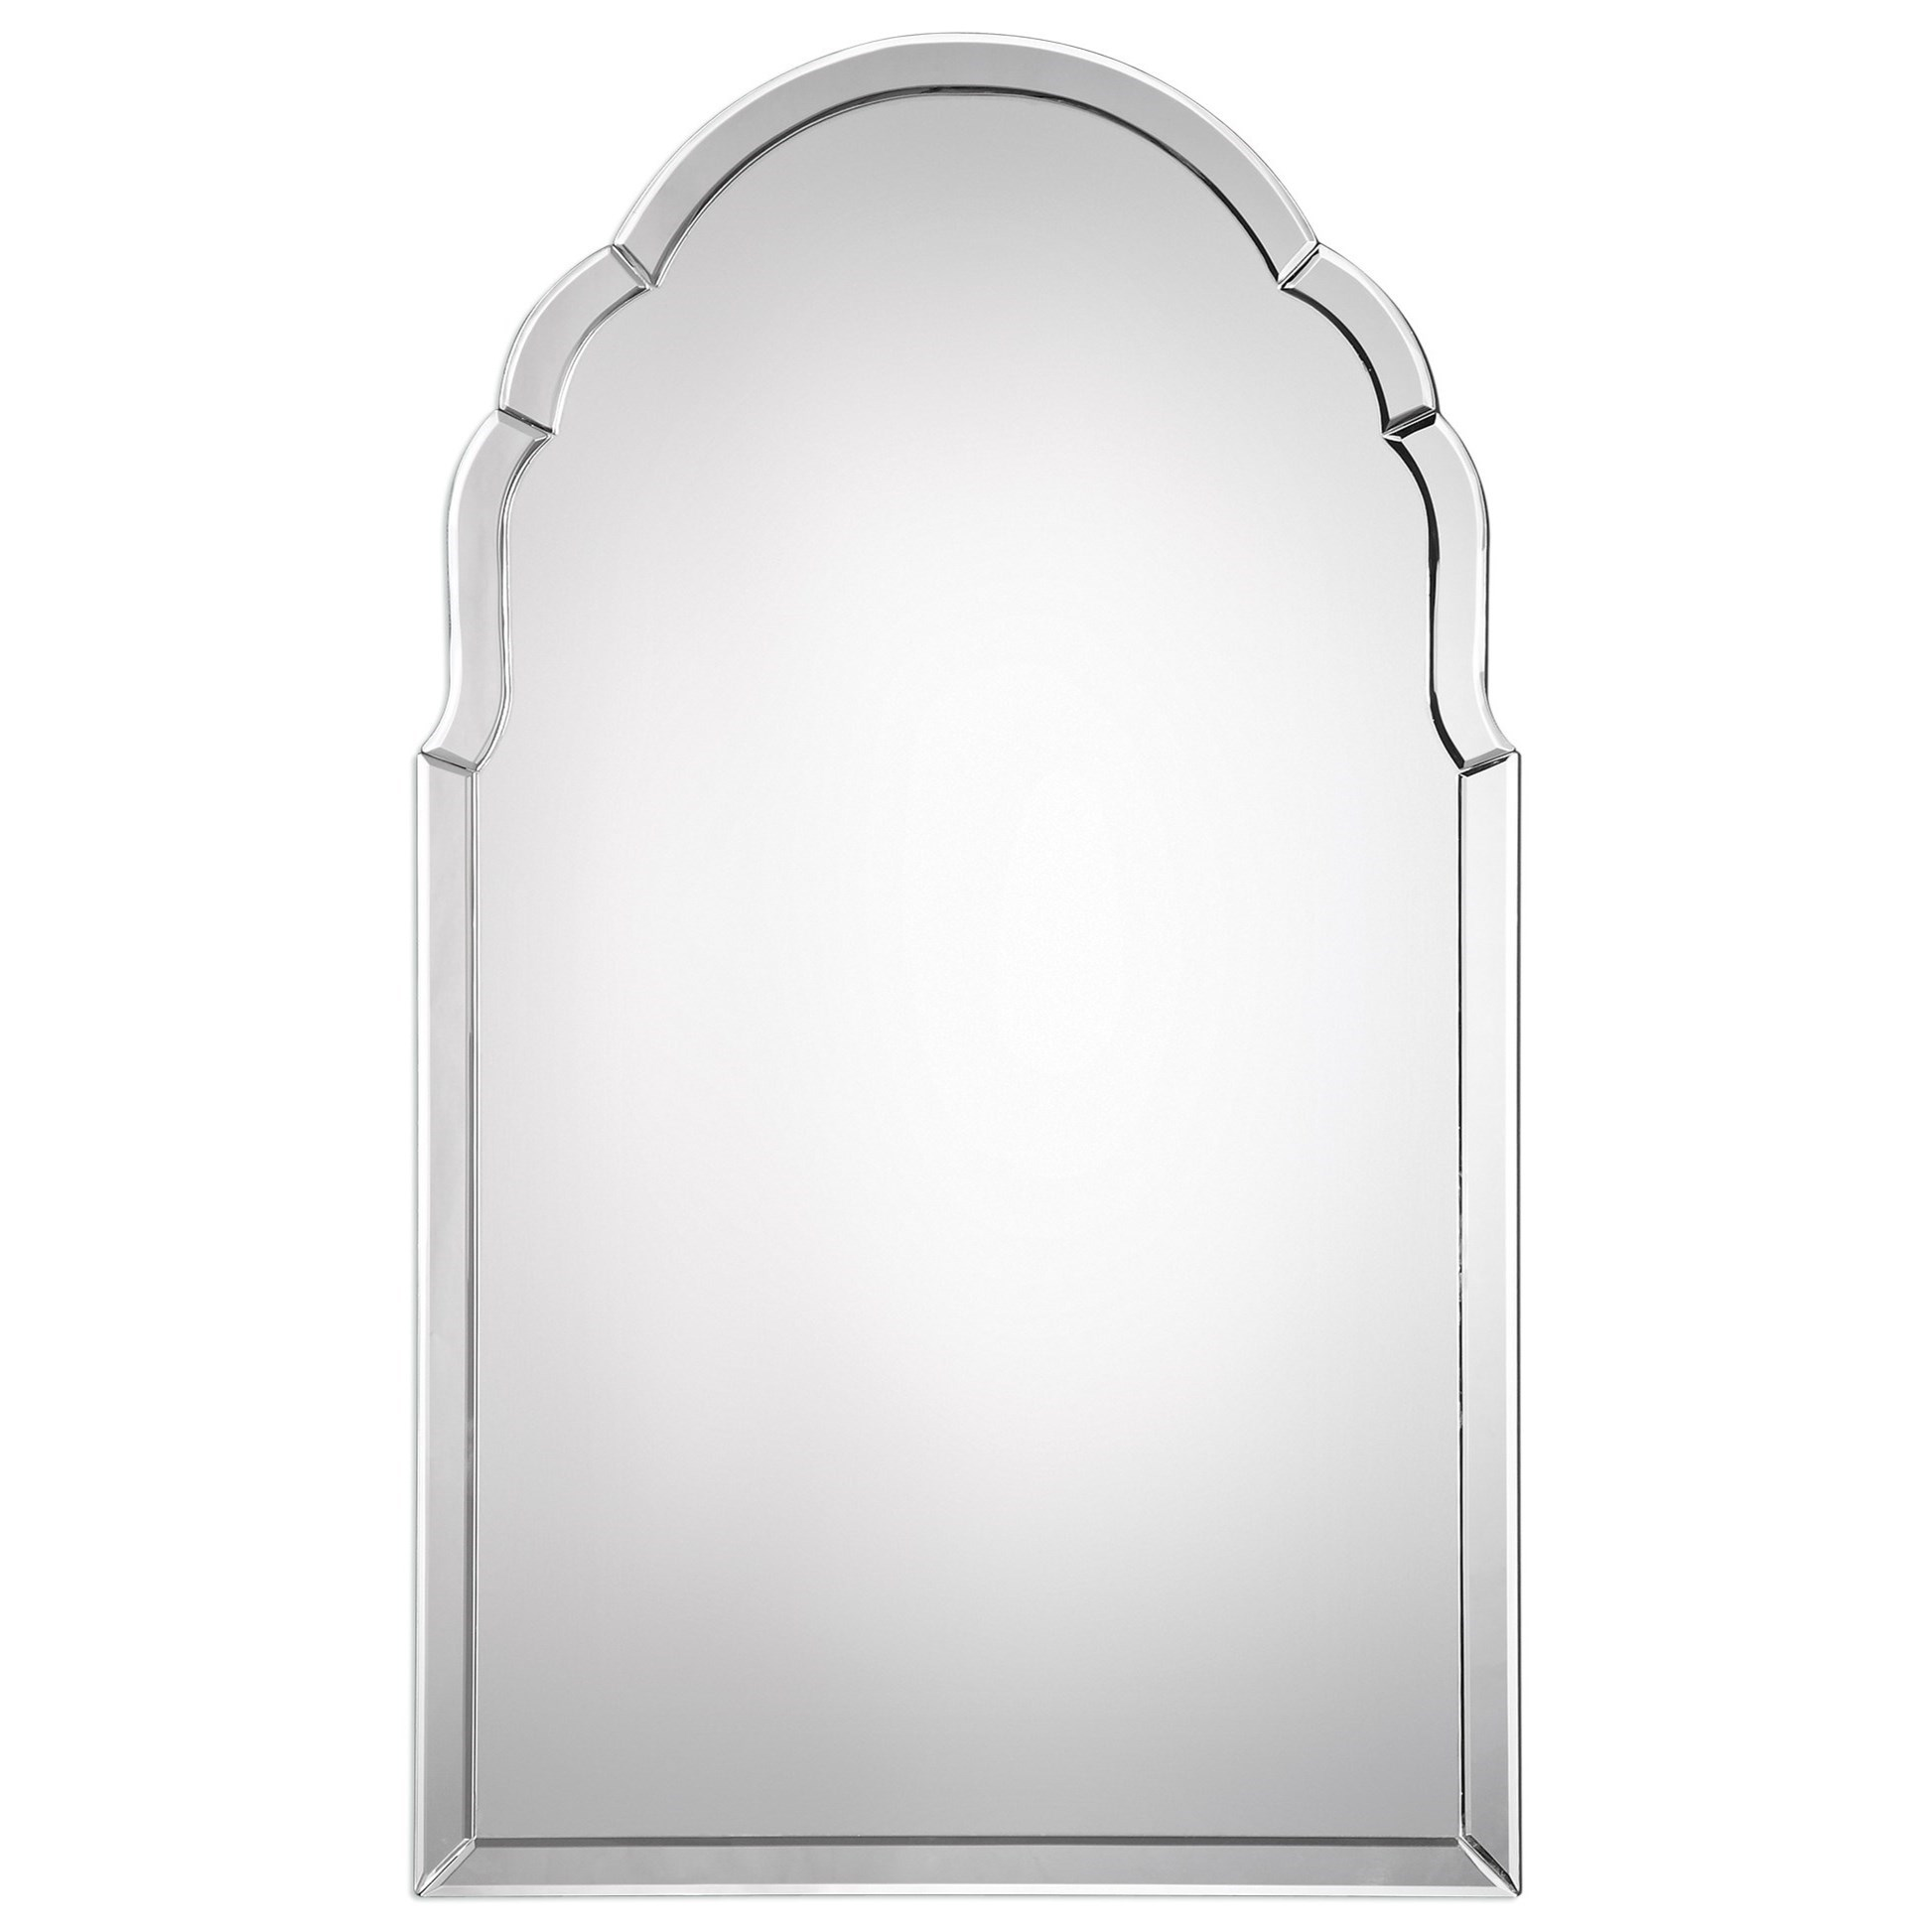 Uttermost Mirrors Brayden Frameless - Item Number: 09149